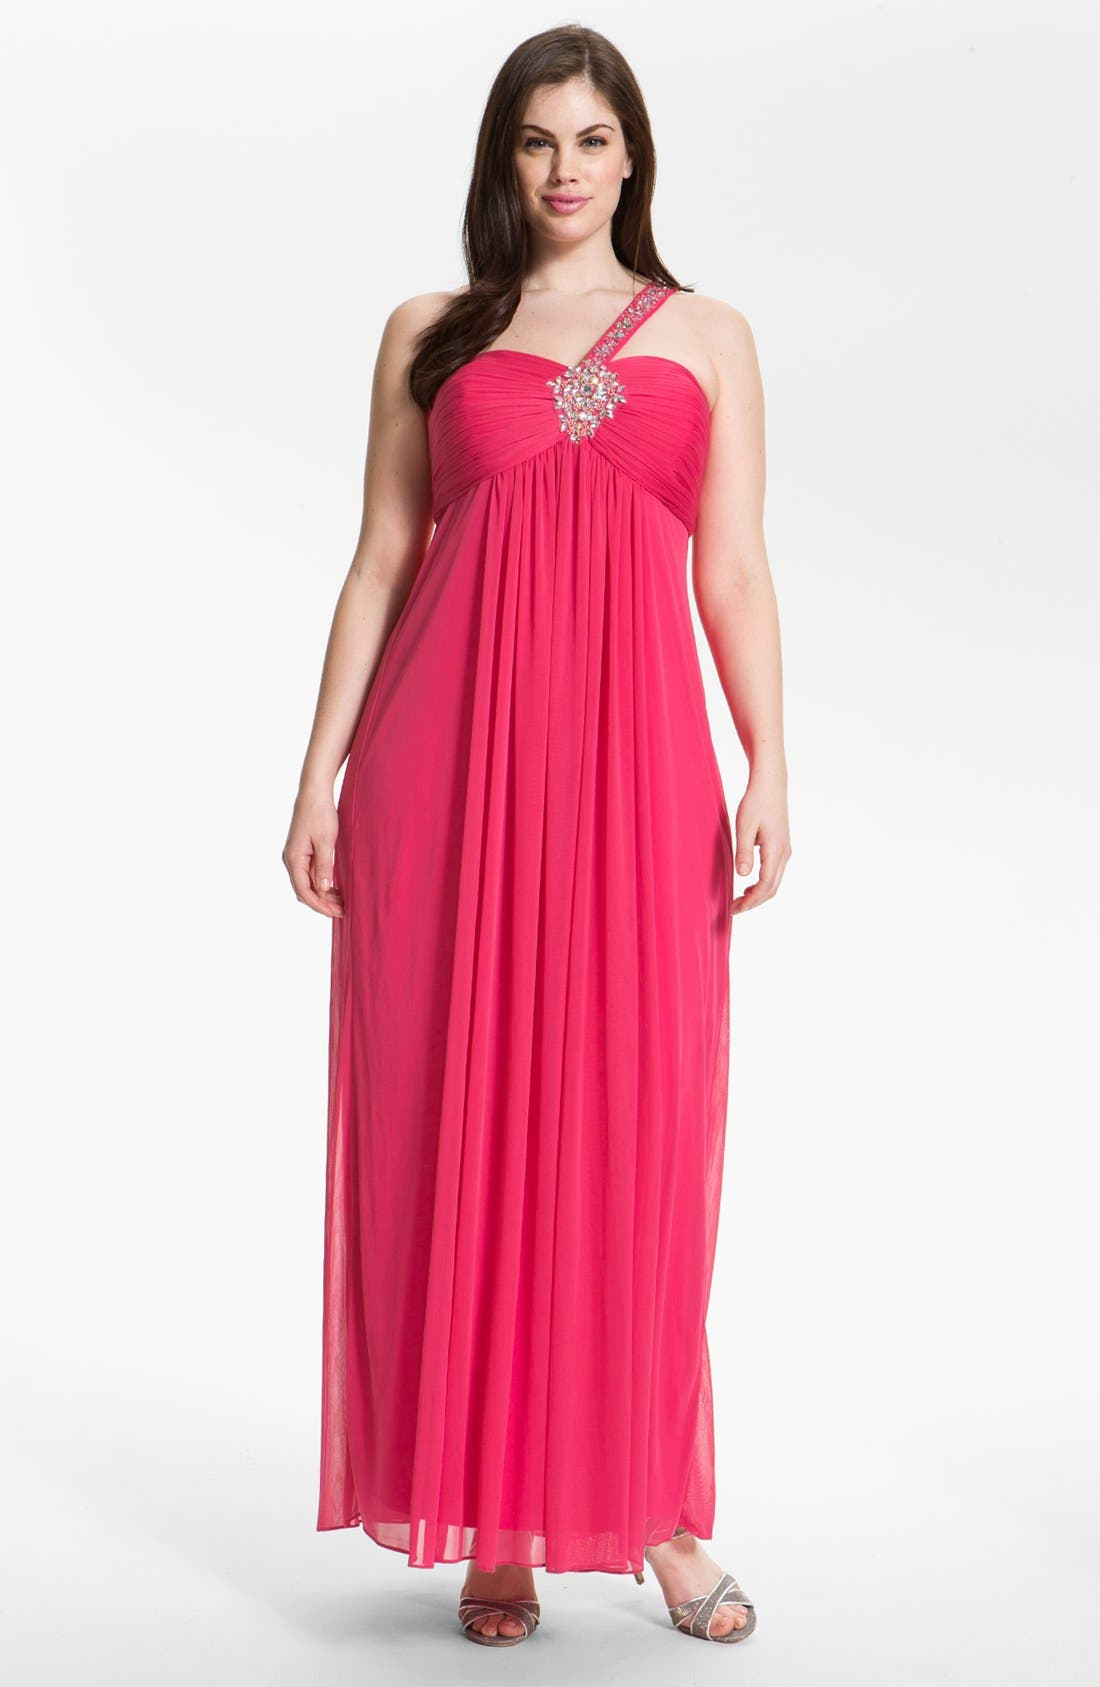 Main Image - Xscape Embellished One Shoulder Mesh Gown (Plus Size)